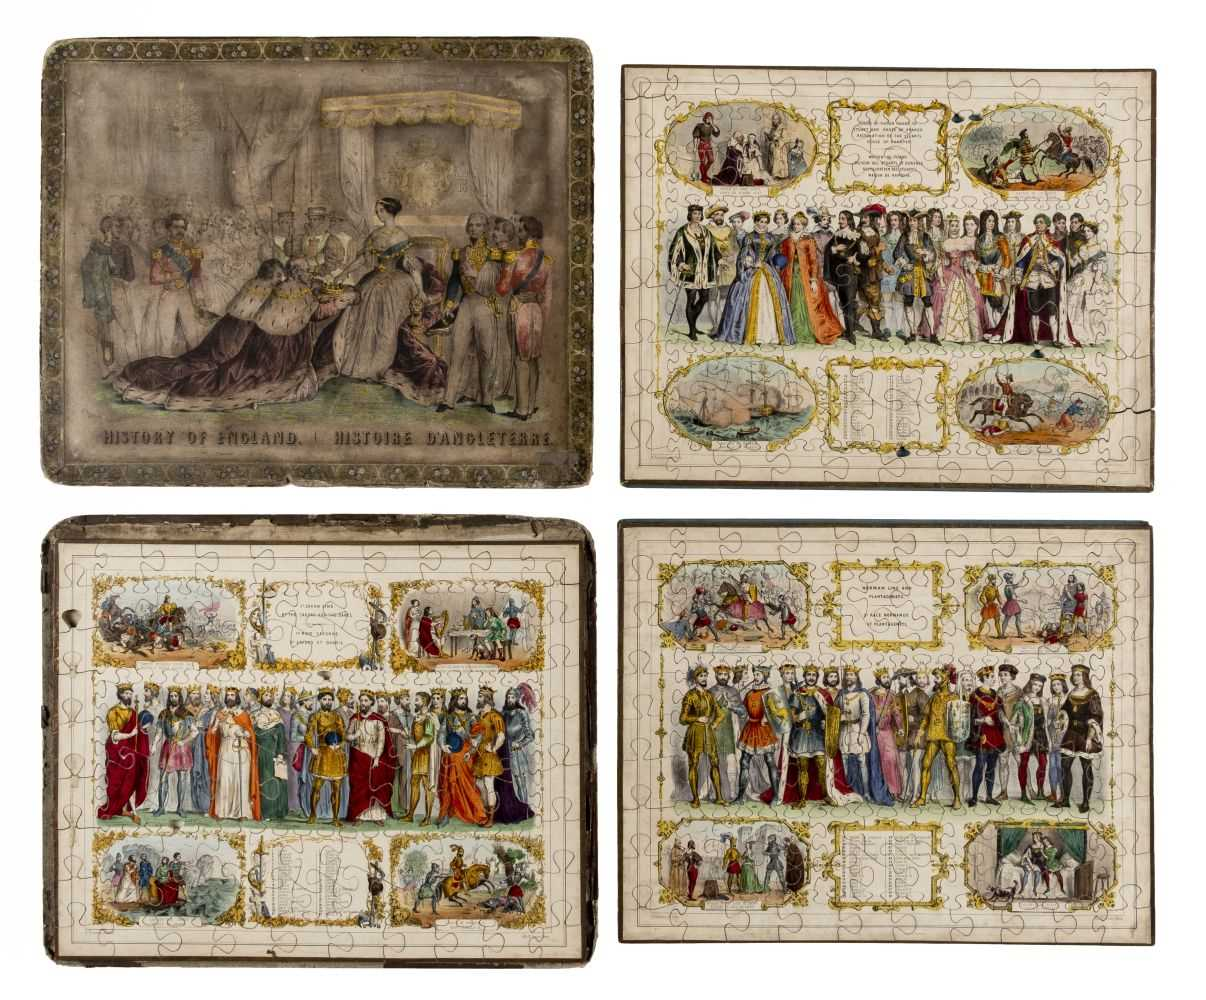 Lot 539-Jigsaw. History of England, after 1853